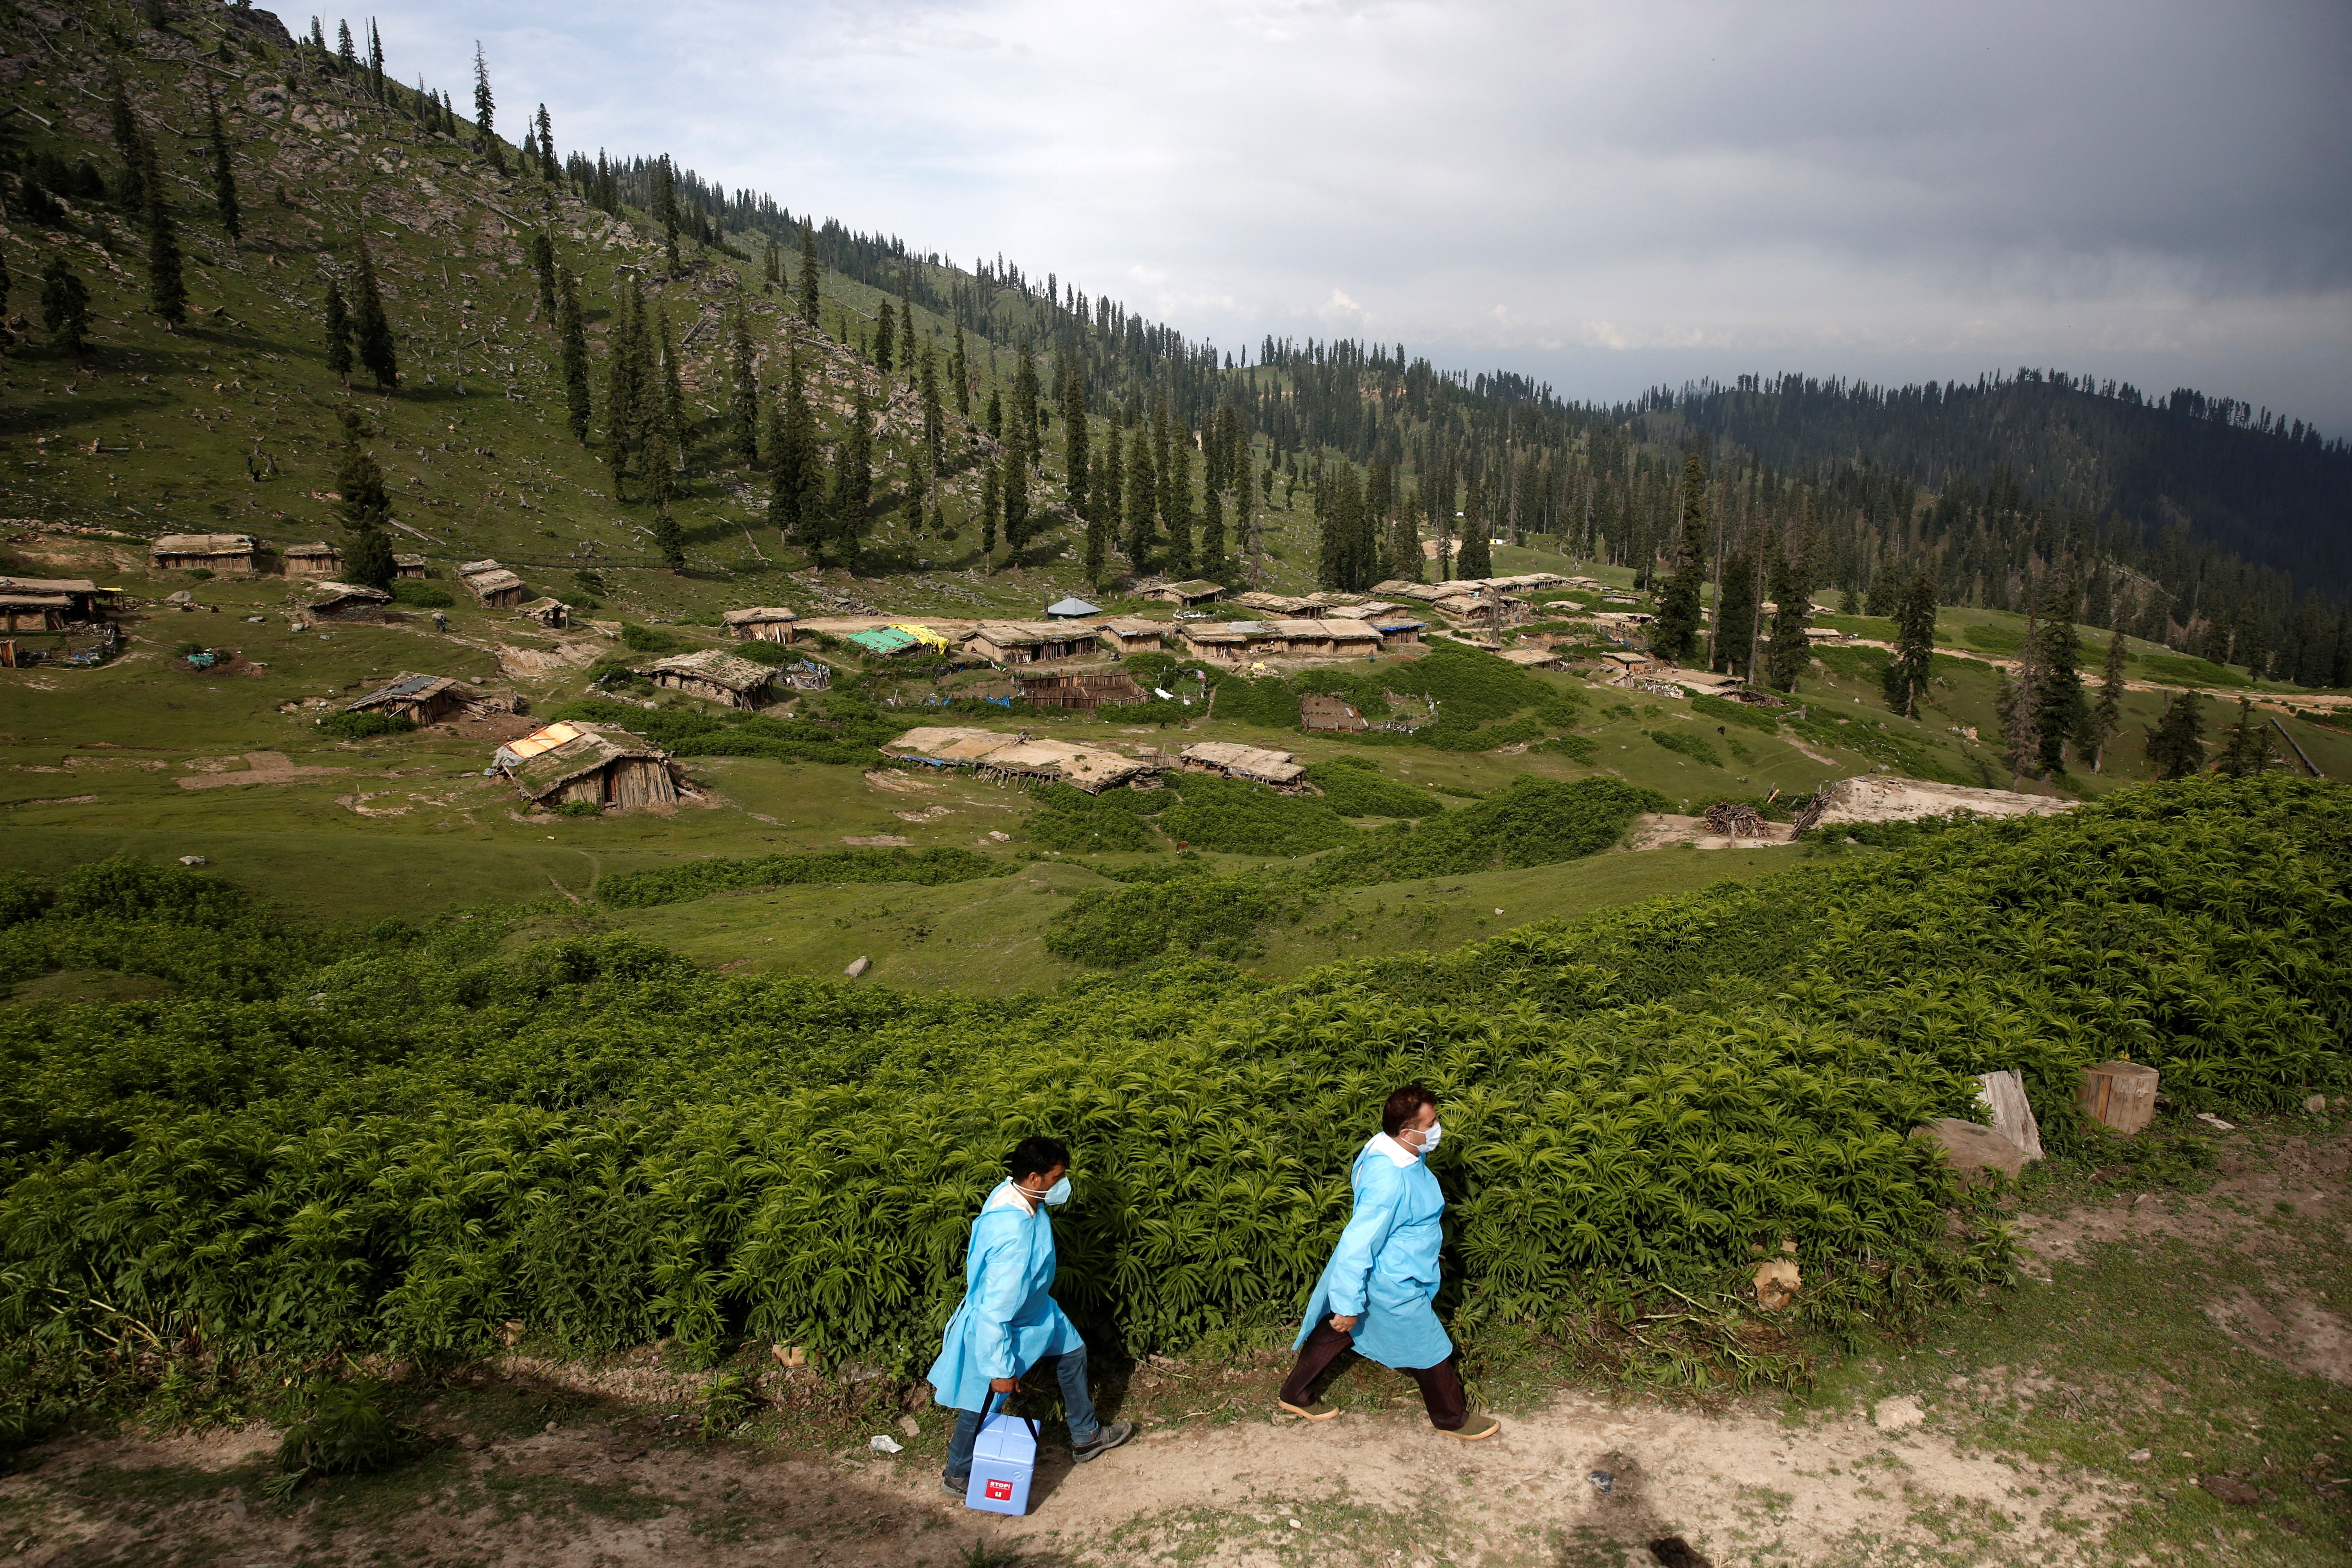 Healthcare workers arrive to vaccinate shepherds with COVISHIELD, a coronavirus disease (COVID-19) vaccine manufactured by Serum Institute of India, during a vaccination drive at Tosa Maidan in central Kashmir's Budgam district on June 21, 2021. REUTERS/Danish Ismail - RC225O9BVO98